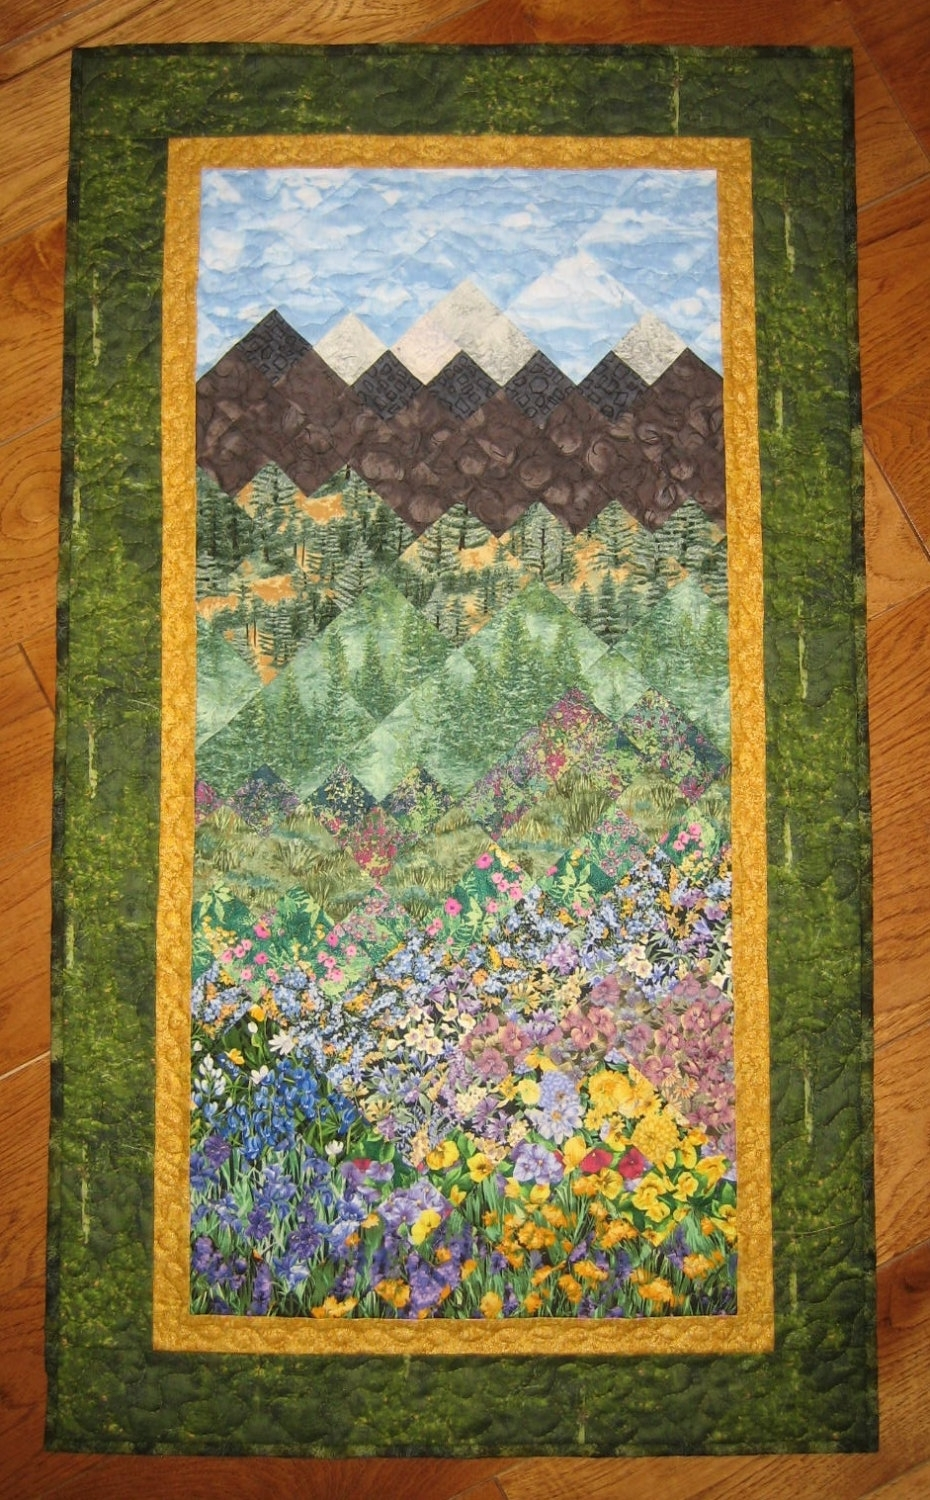 Art Quilt Fabric Wallhanging Pine Trees Mountain Flowers Handmade Inside Most Up To Date Fabric Applique Wall Art (View 12 of 15)